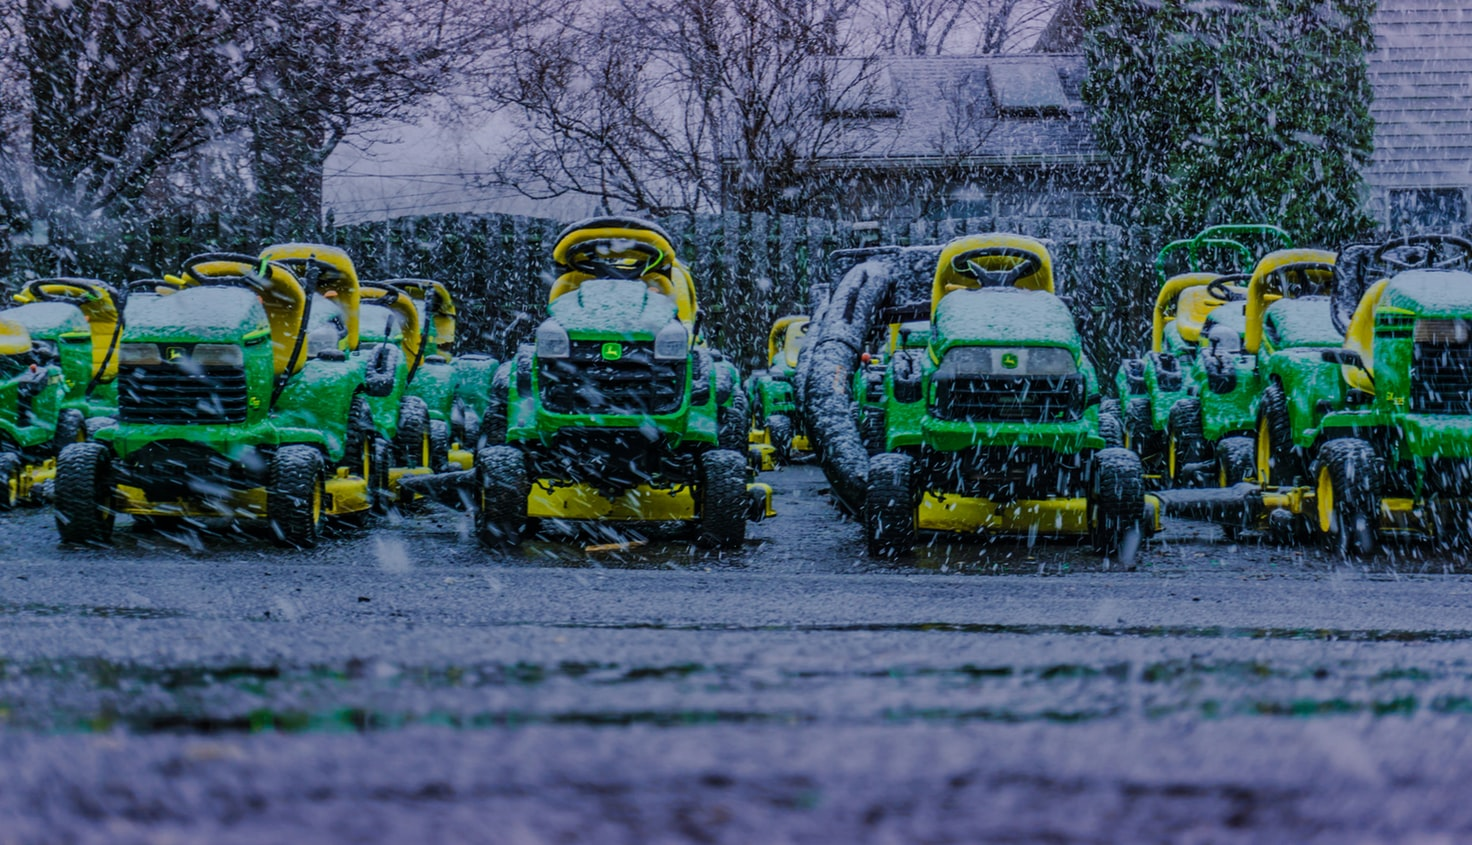 Snowing with lawn mowers